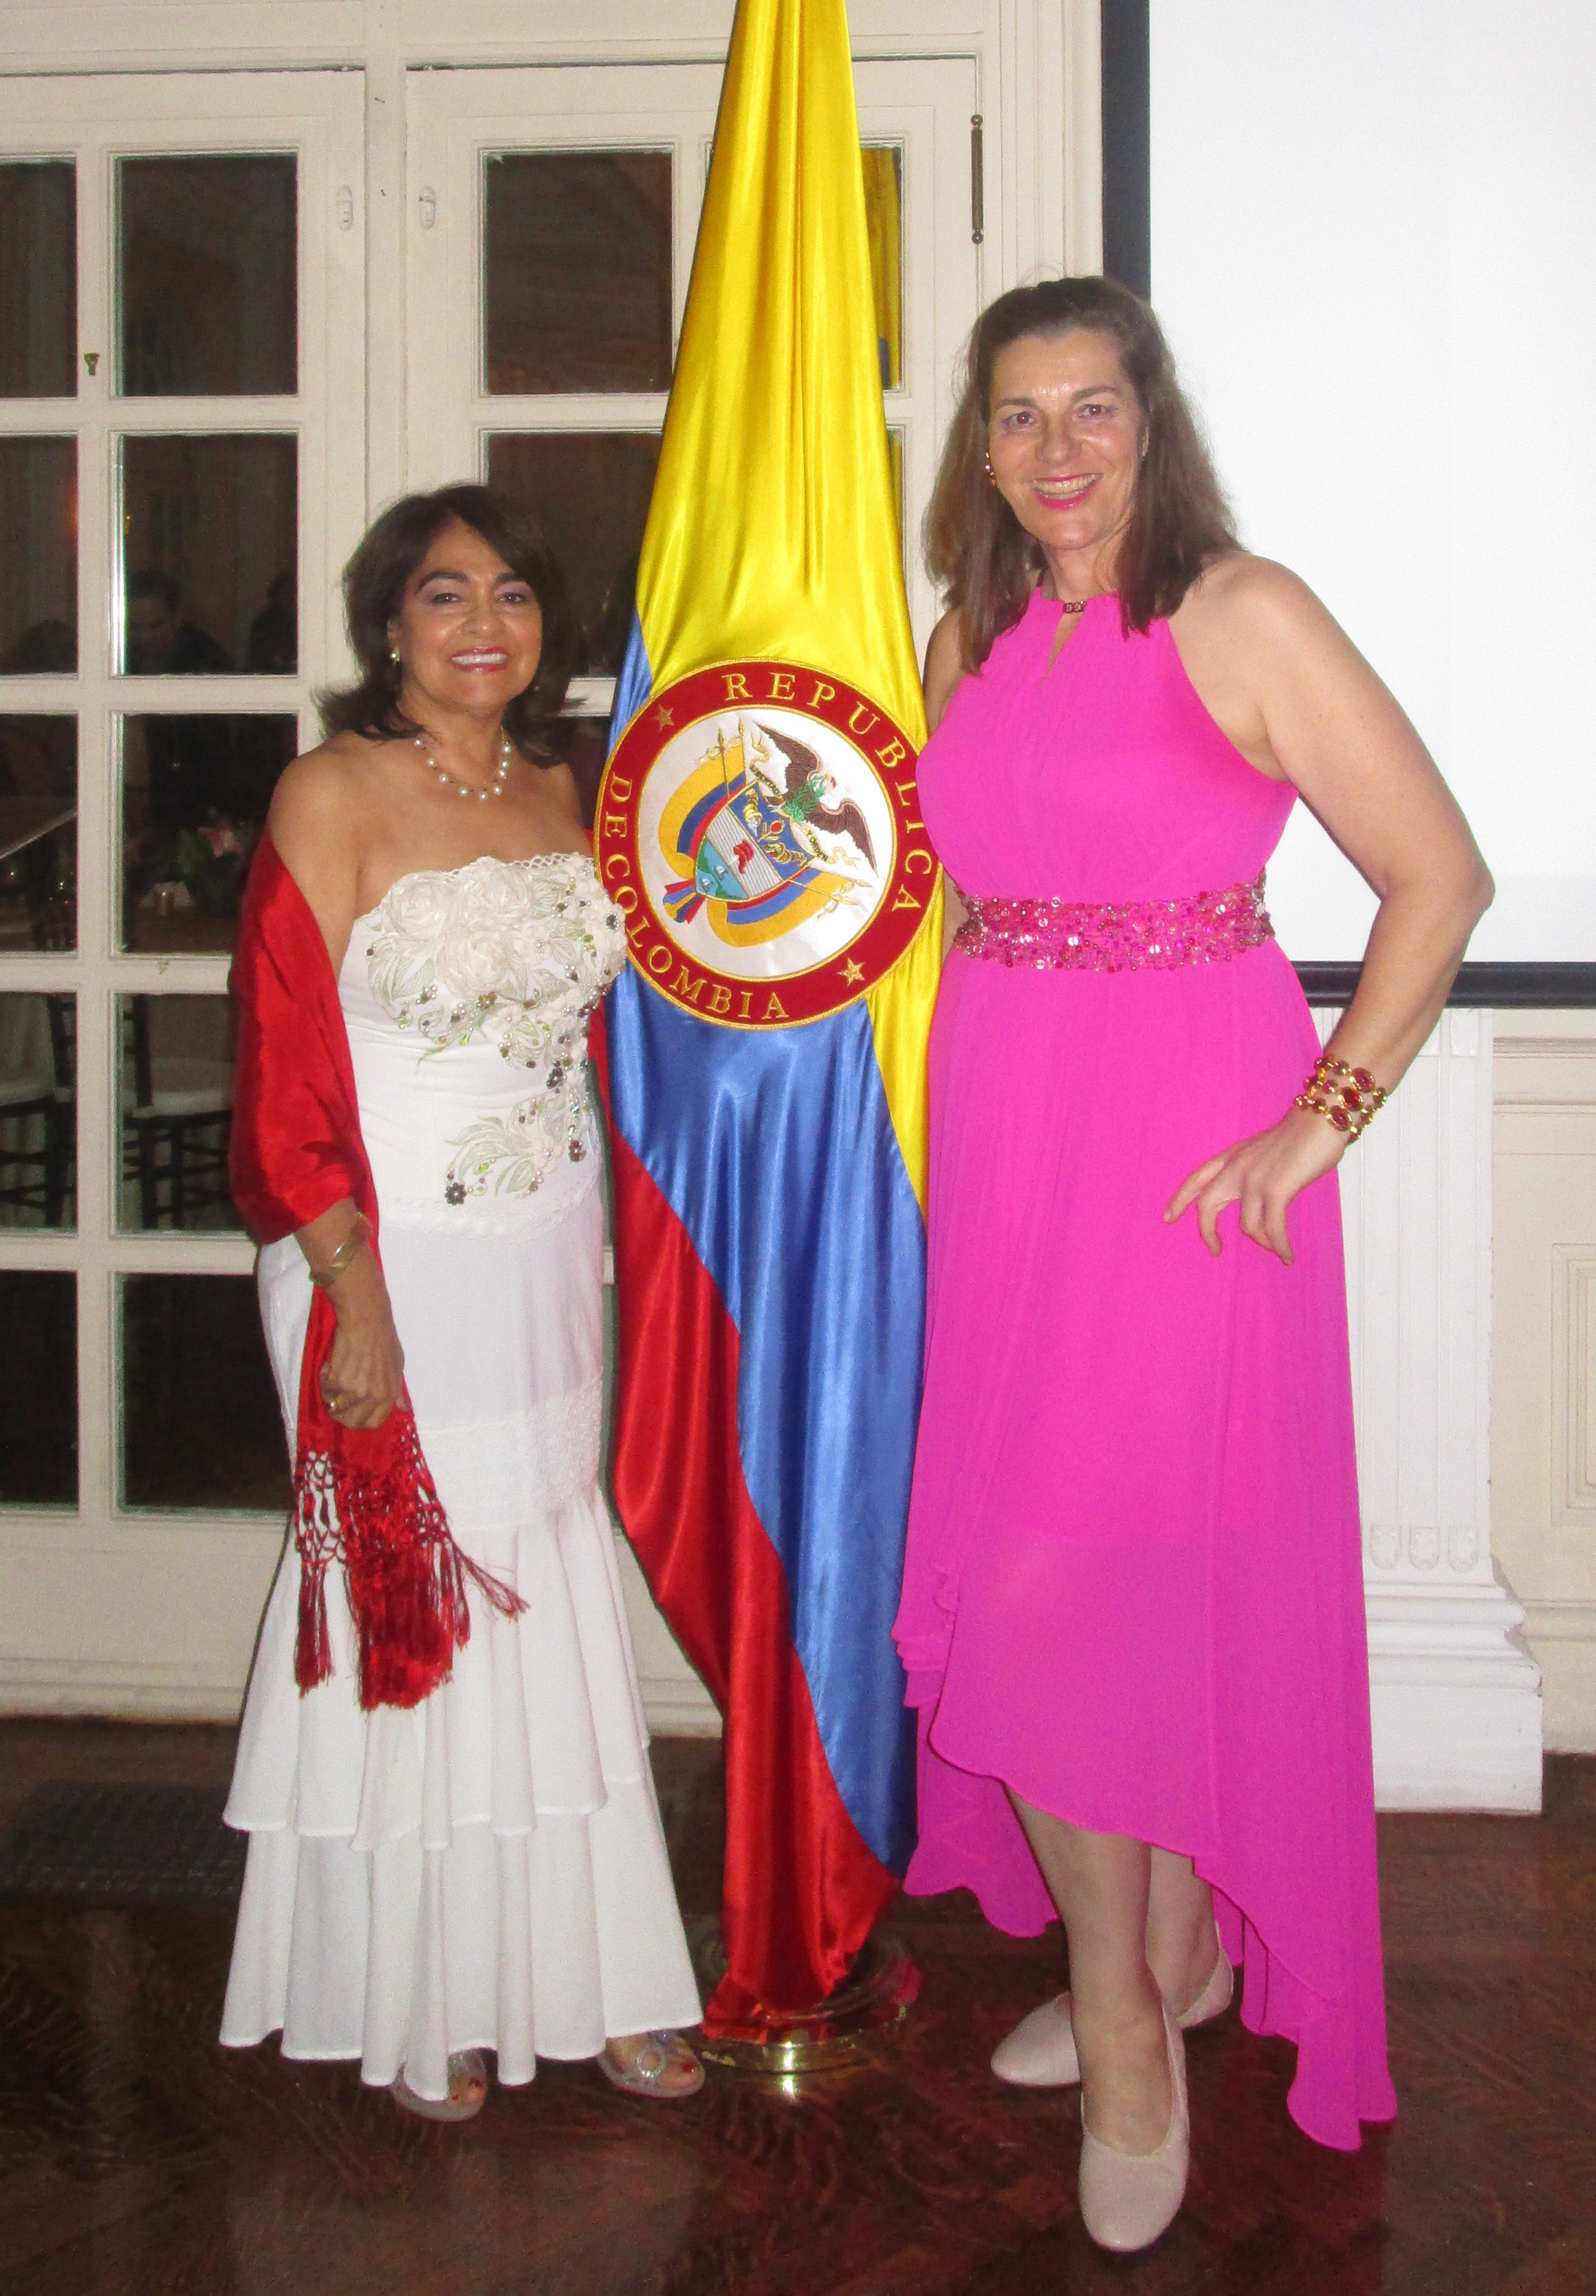 Sheila and Joanna at Colombian Residence